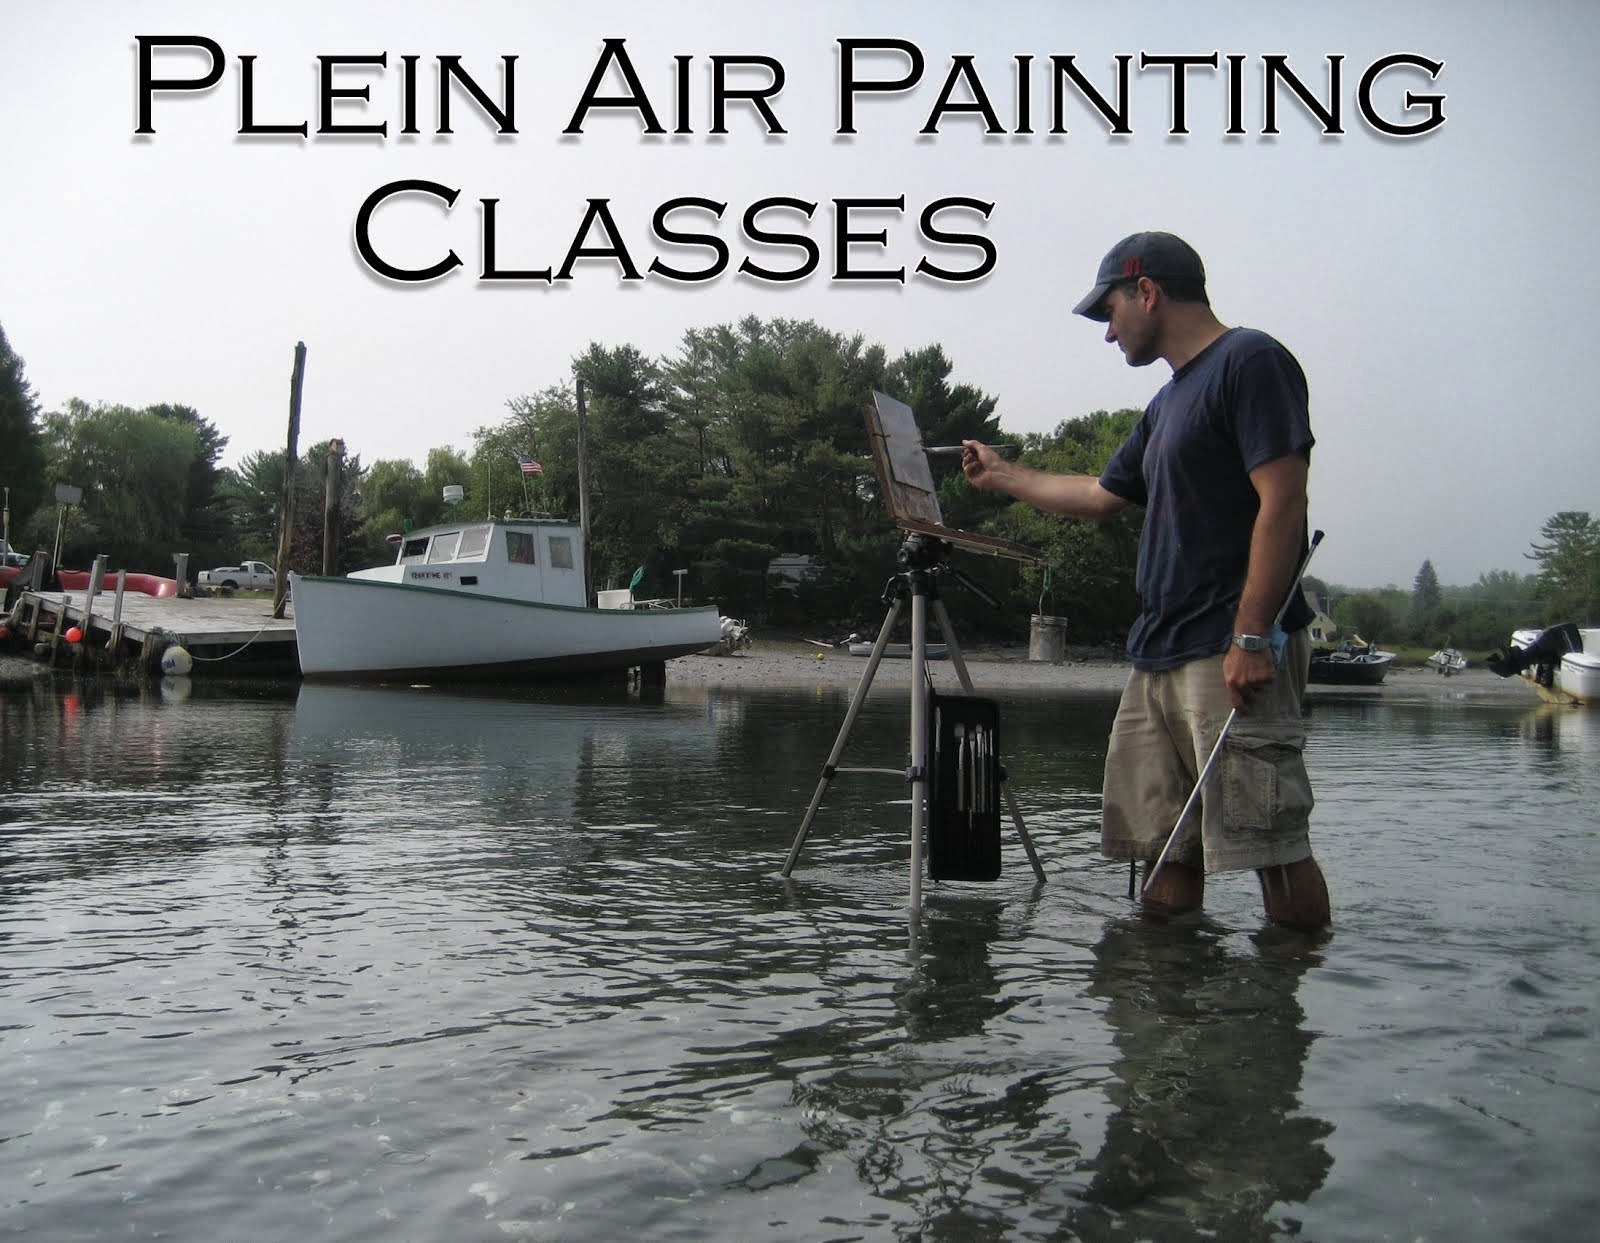 PLEIN AIR PAINTING CLASSES